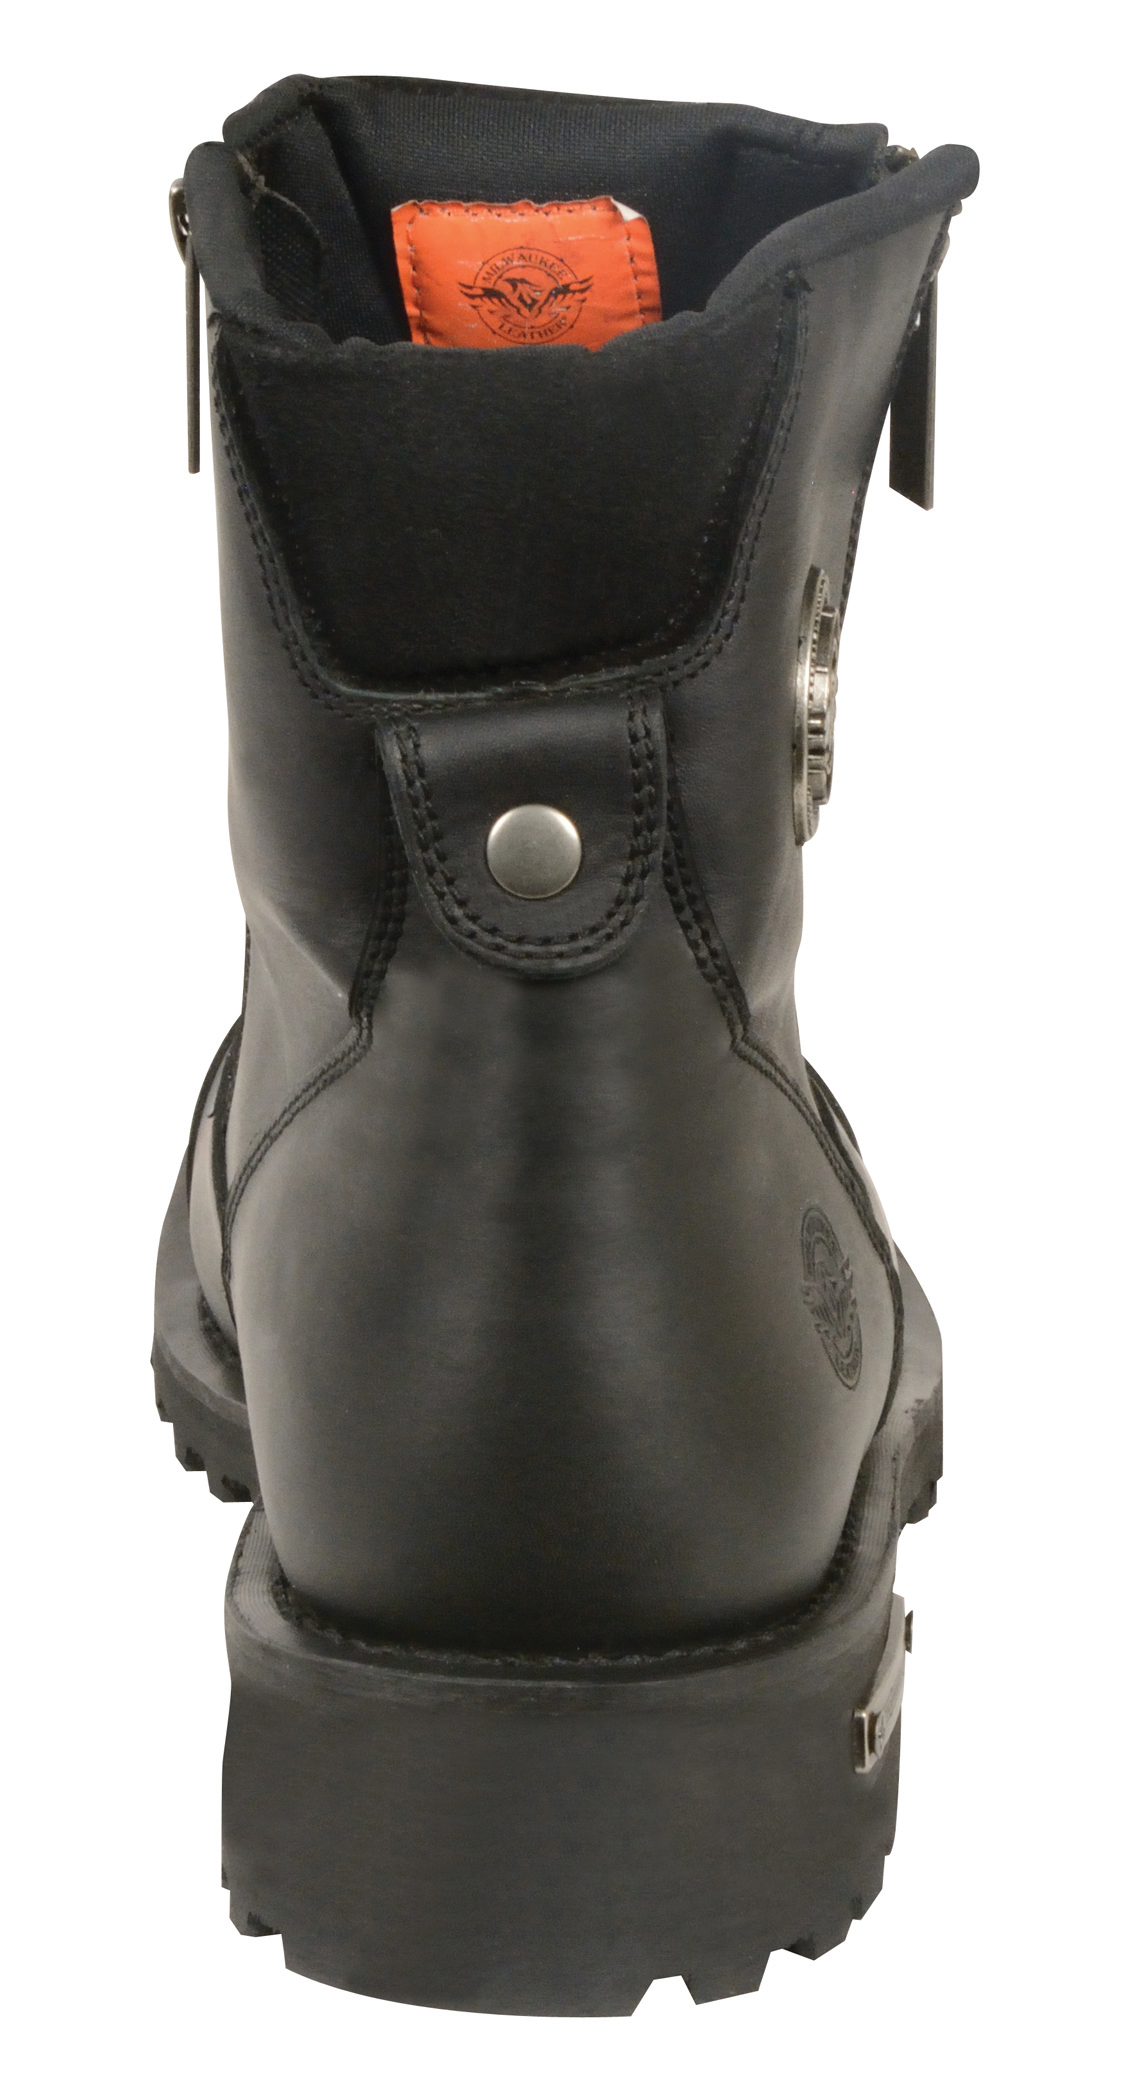 motorcycle boots with side zip